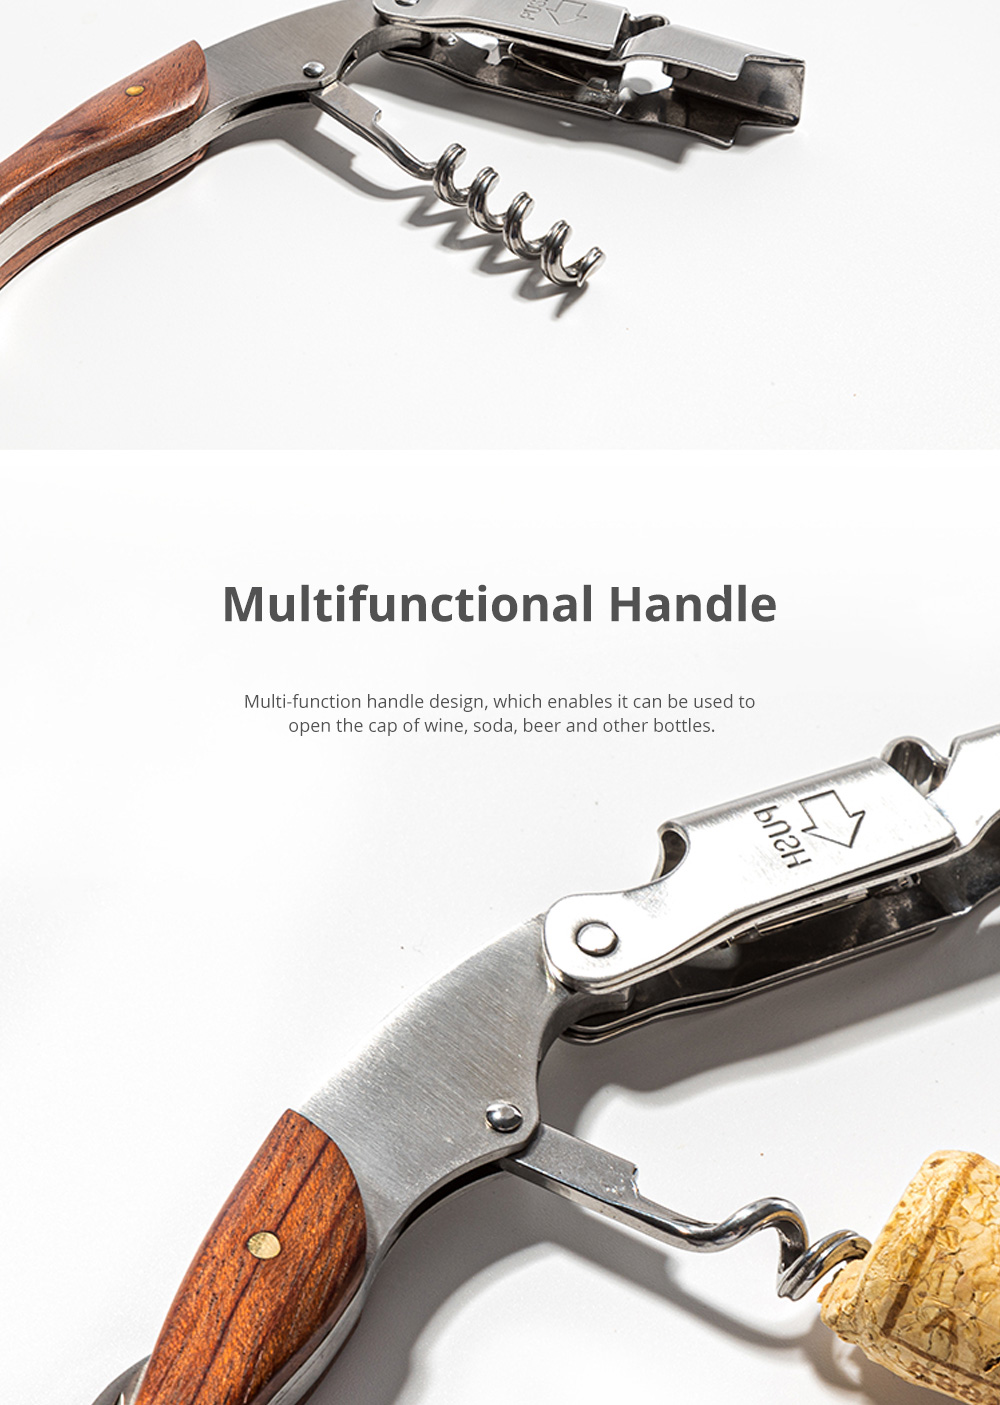 Creative Stainless Steel Wine Opener Professional Knife Wine Bottle Opener with Multifunctional Handle and Sharp Blade 2